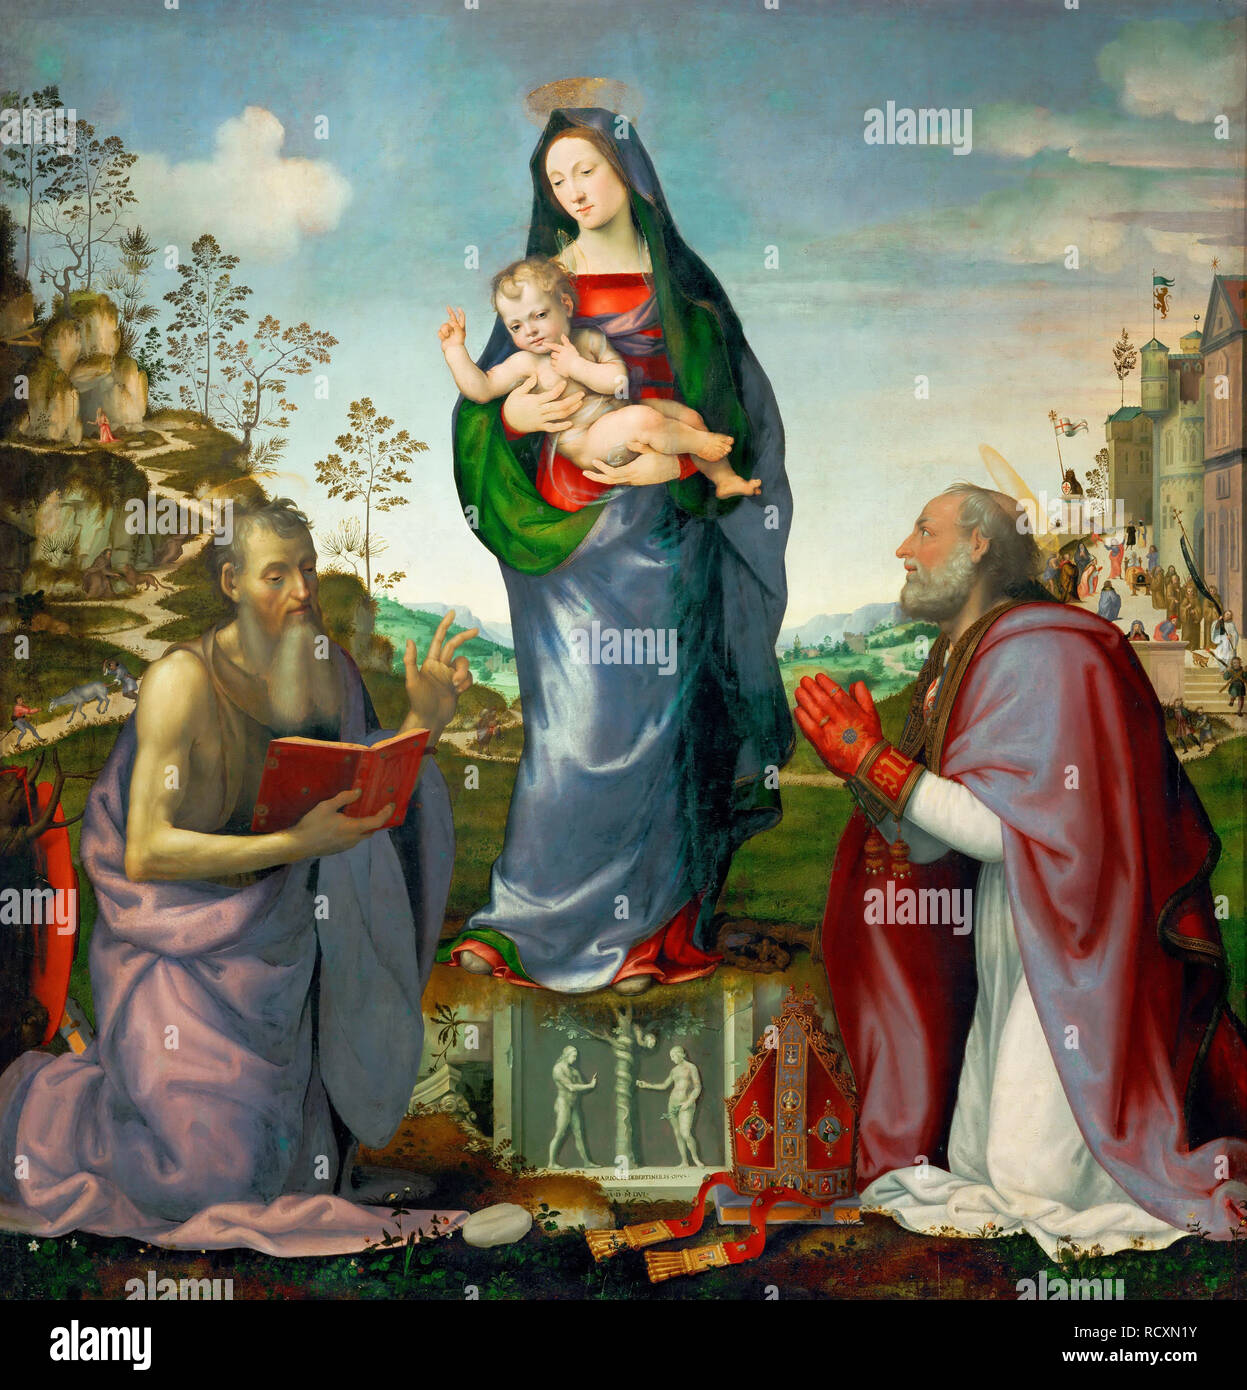 Madonna and Child with Saints James and Zenobius. Museum: Musee du Louvre, Paris. Author: ALBERTINELLI, MARIOTTO. - Stock Image